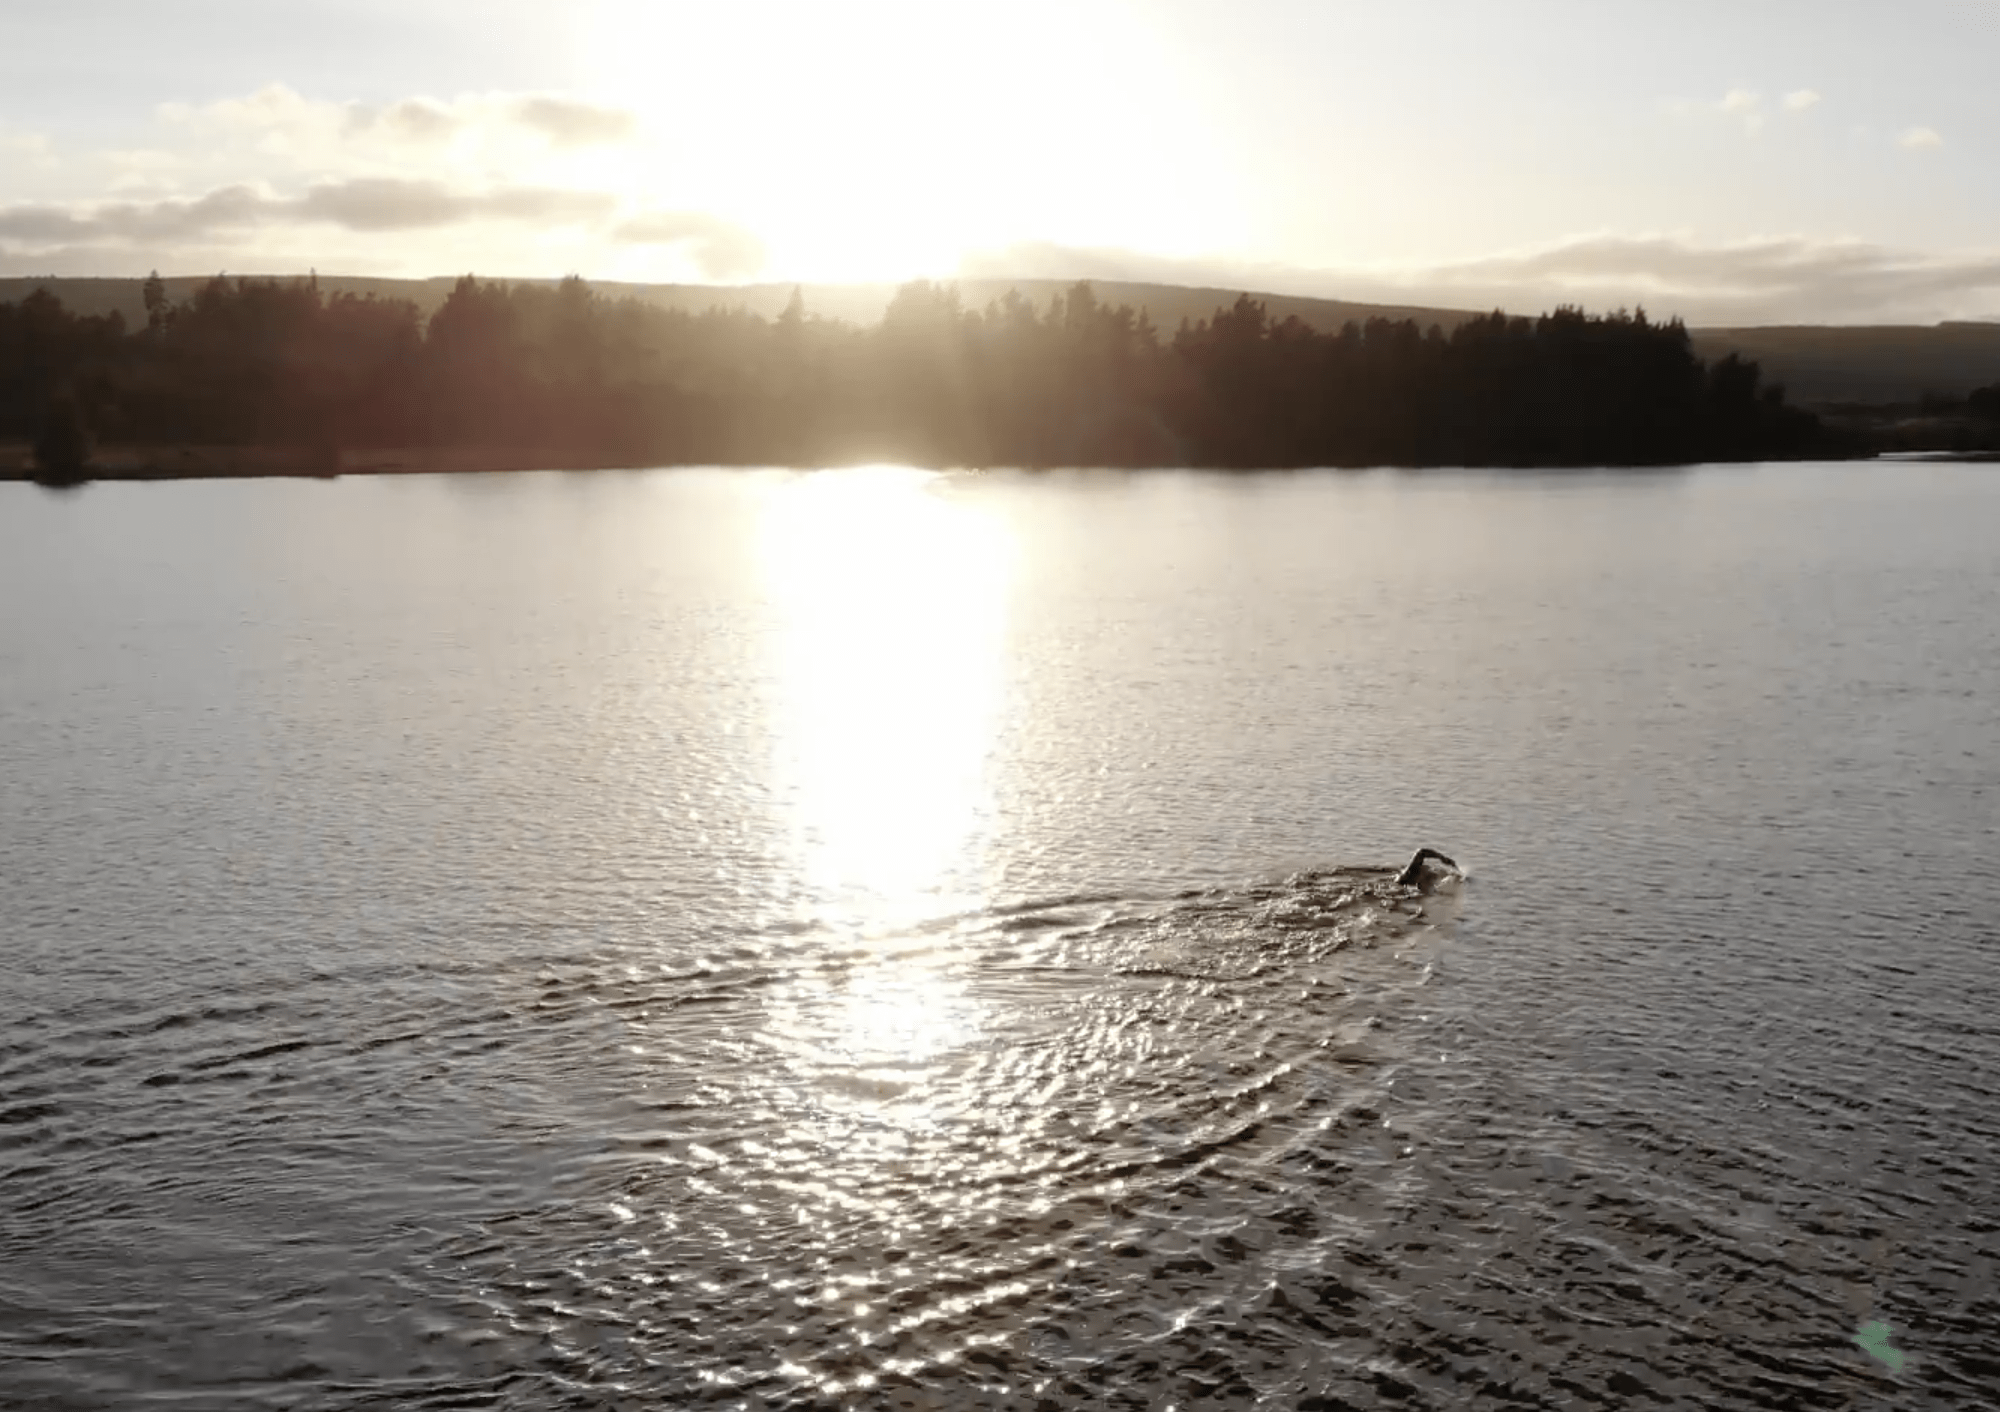 Relieving burn out with a dip in ice-cold Loch Shin